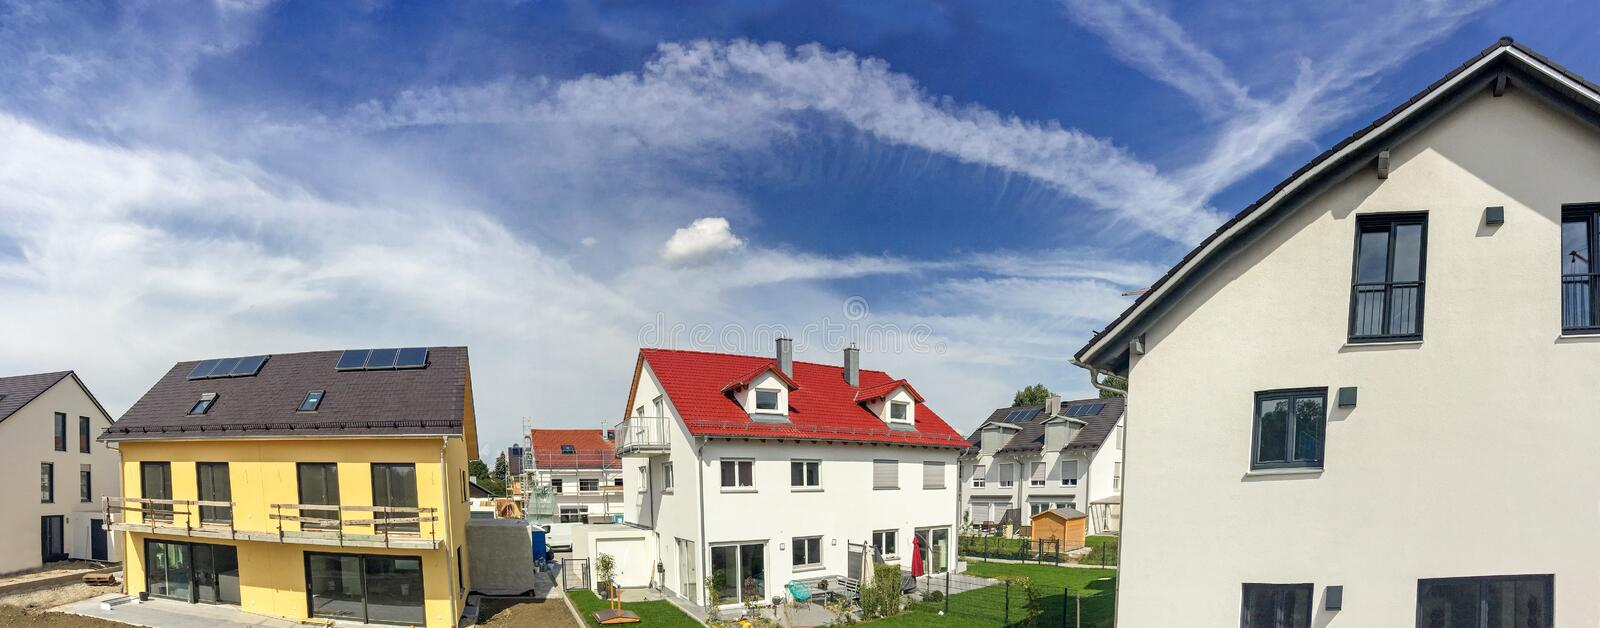 Modern new housing development with semi-detached, townhouses and detached houses, residential area in the city royalty free stock image